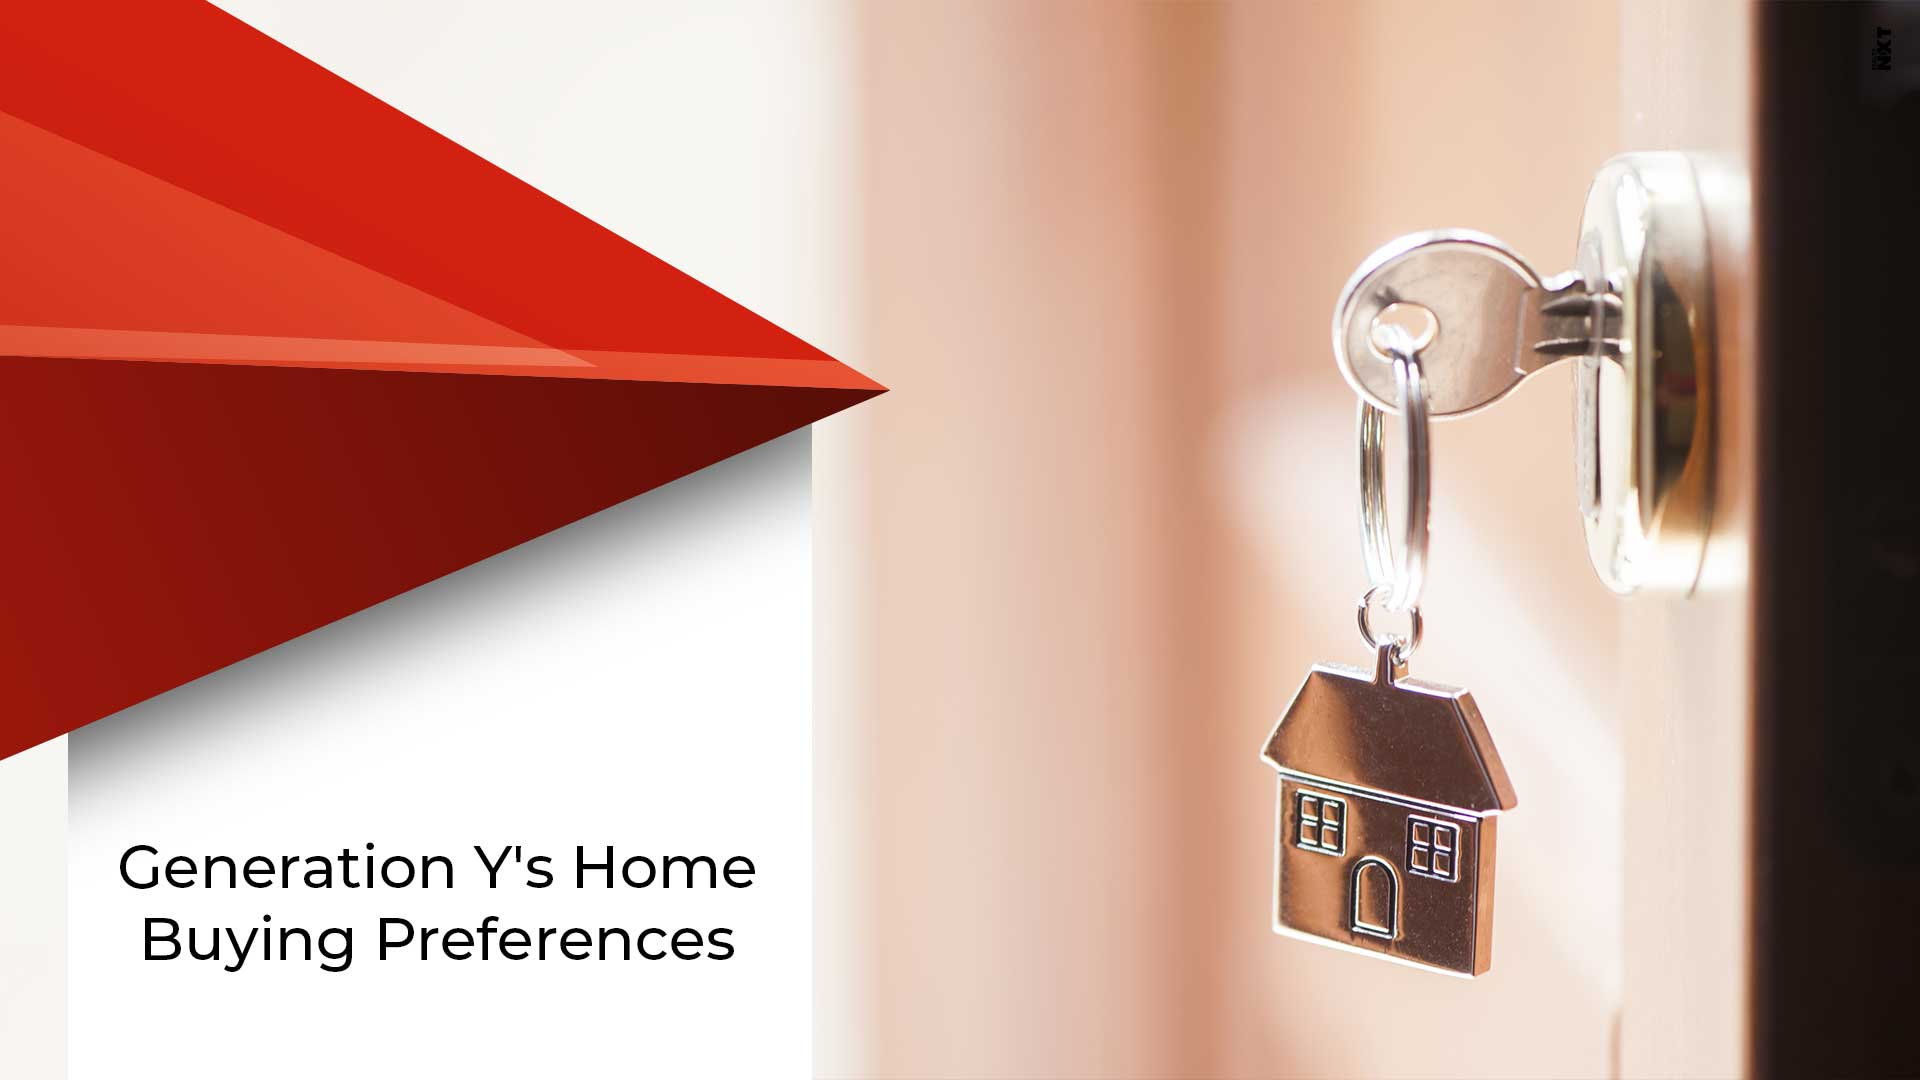 Generation Y's Home Buying Preferences